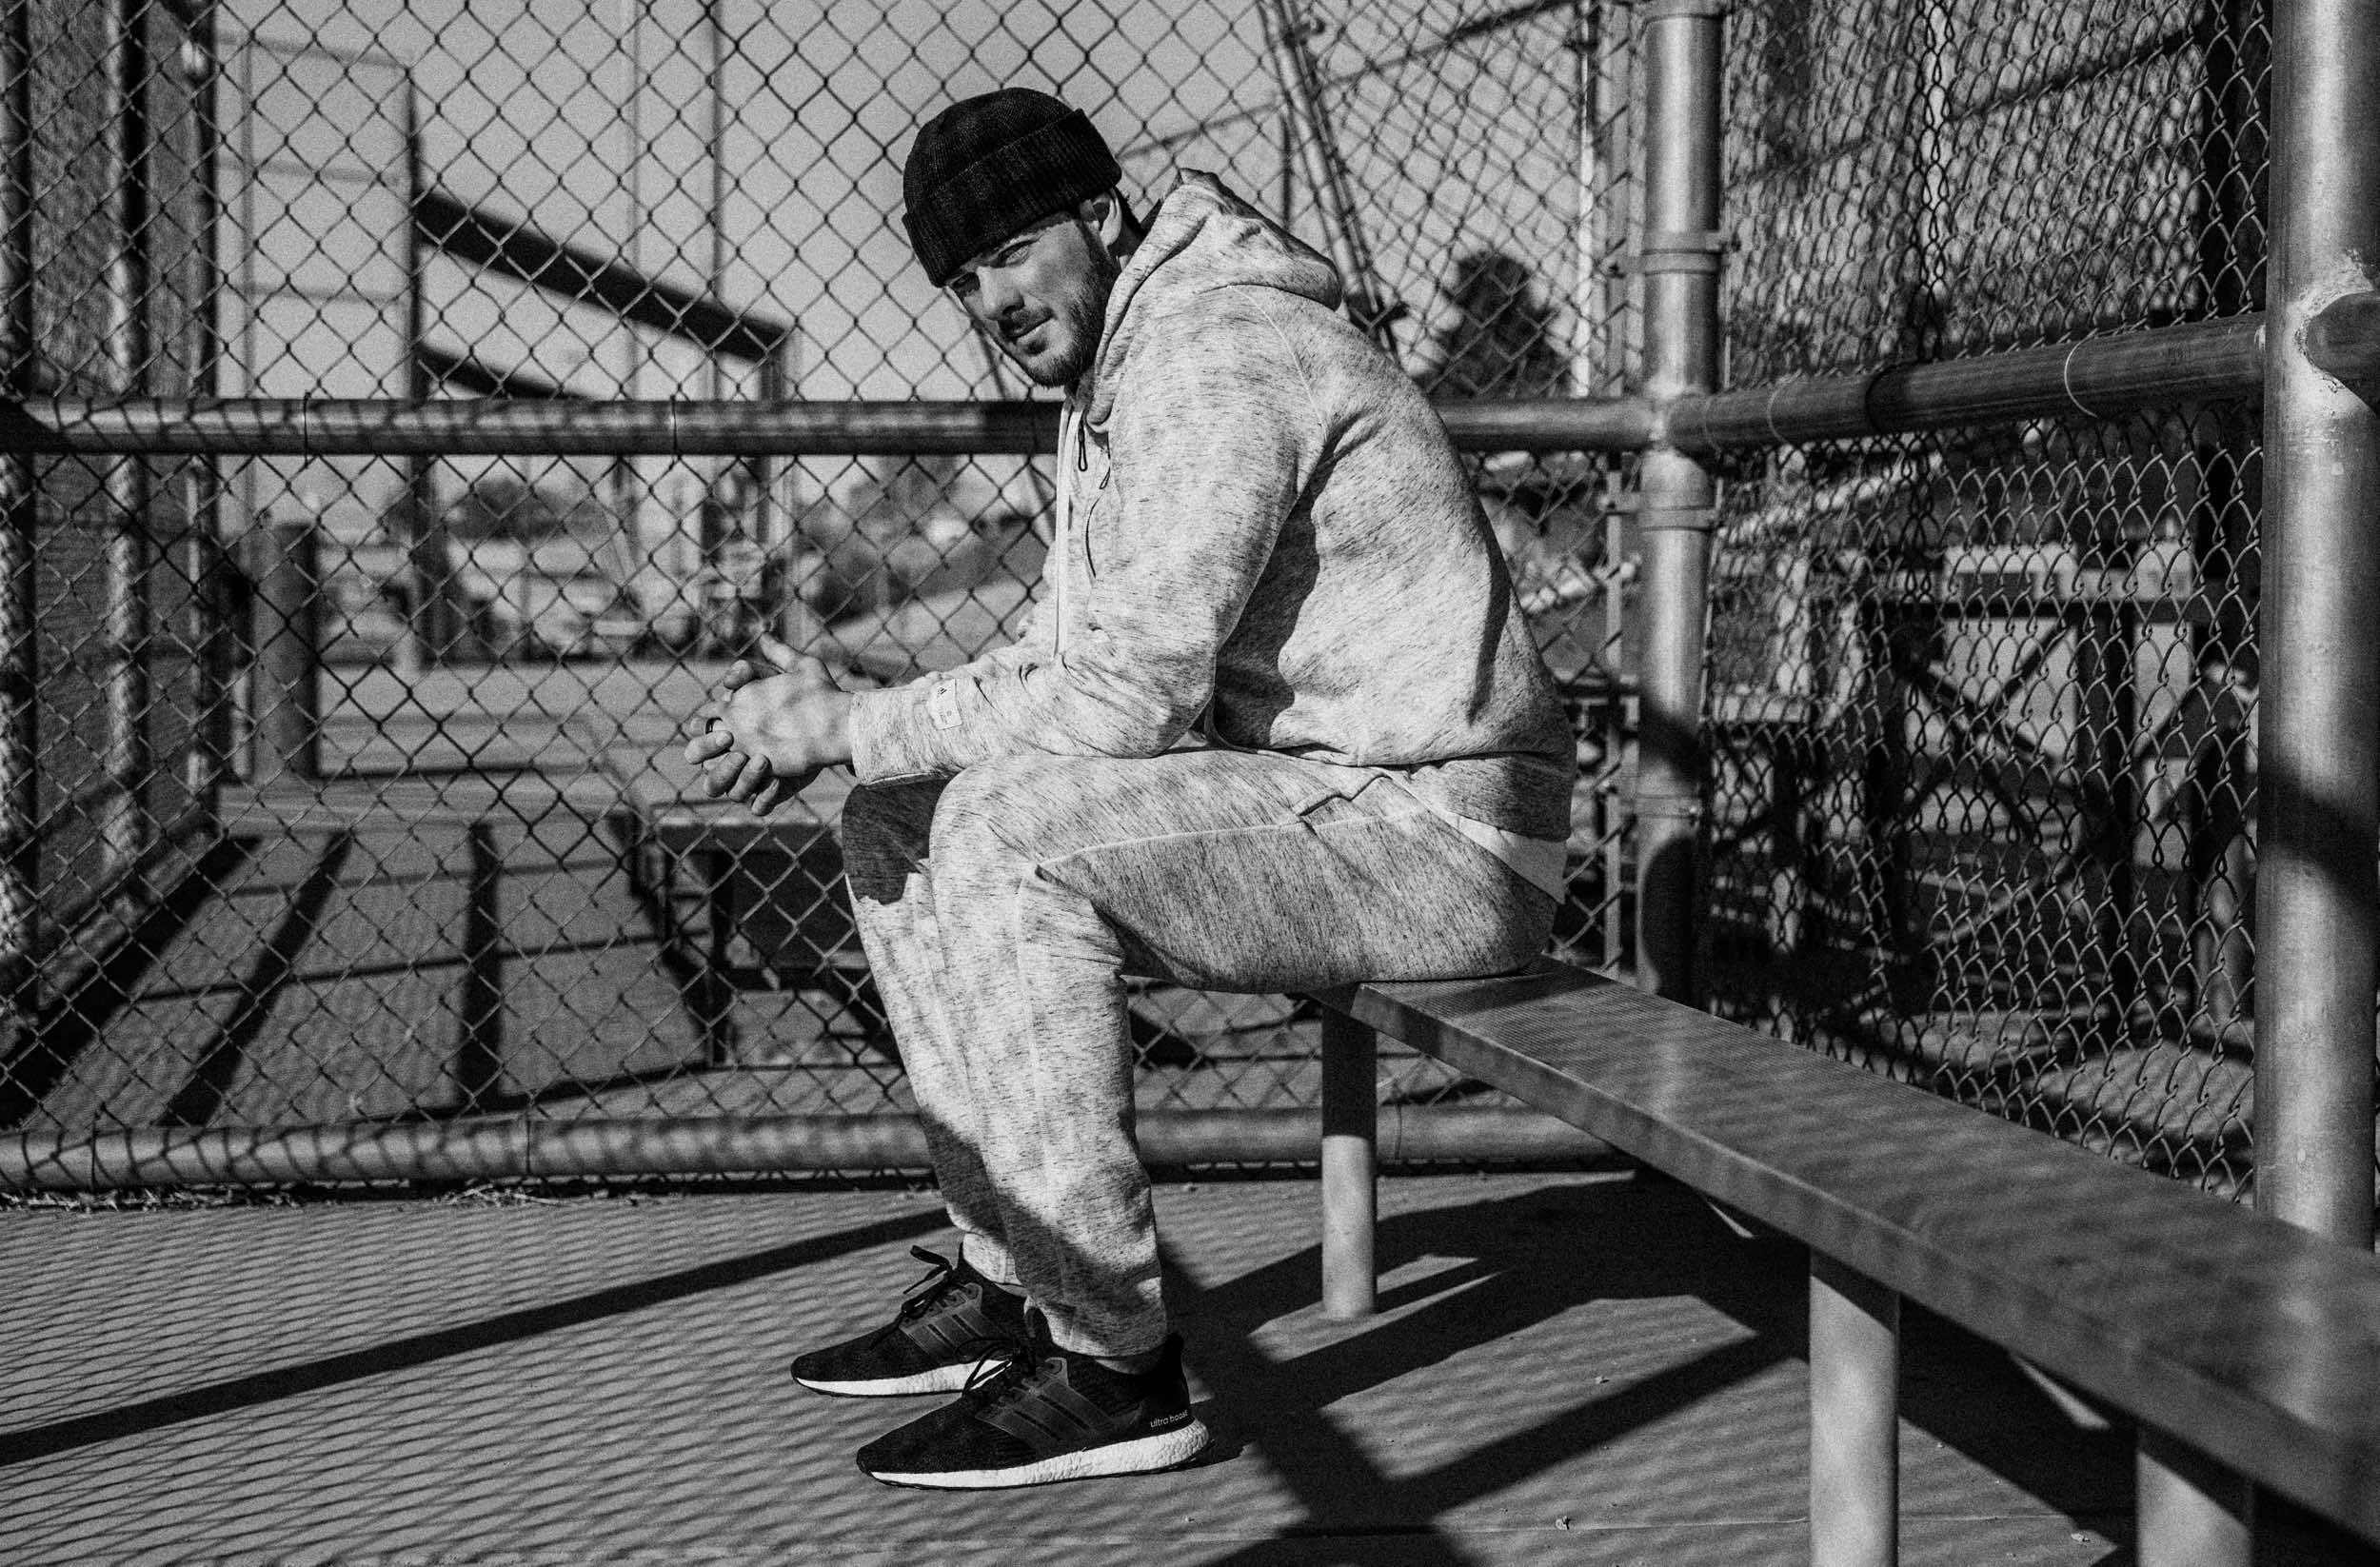 adidas Athletics x Reigning Champ Collection Offers Primeknit